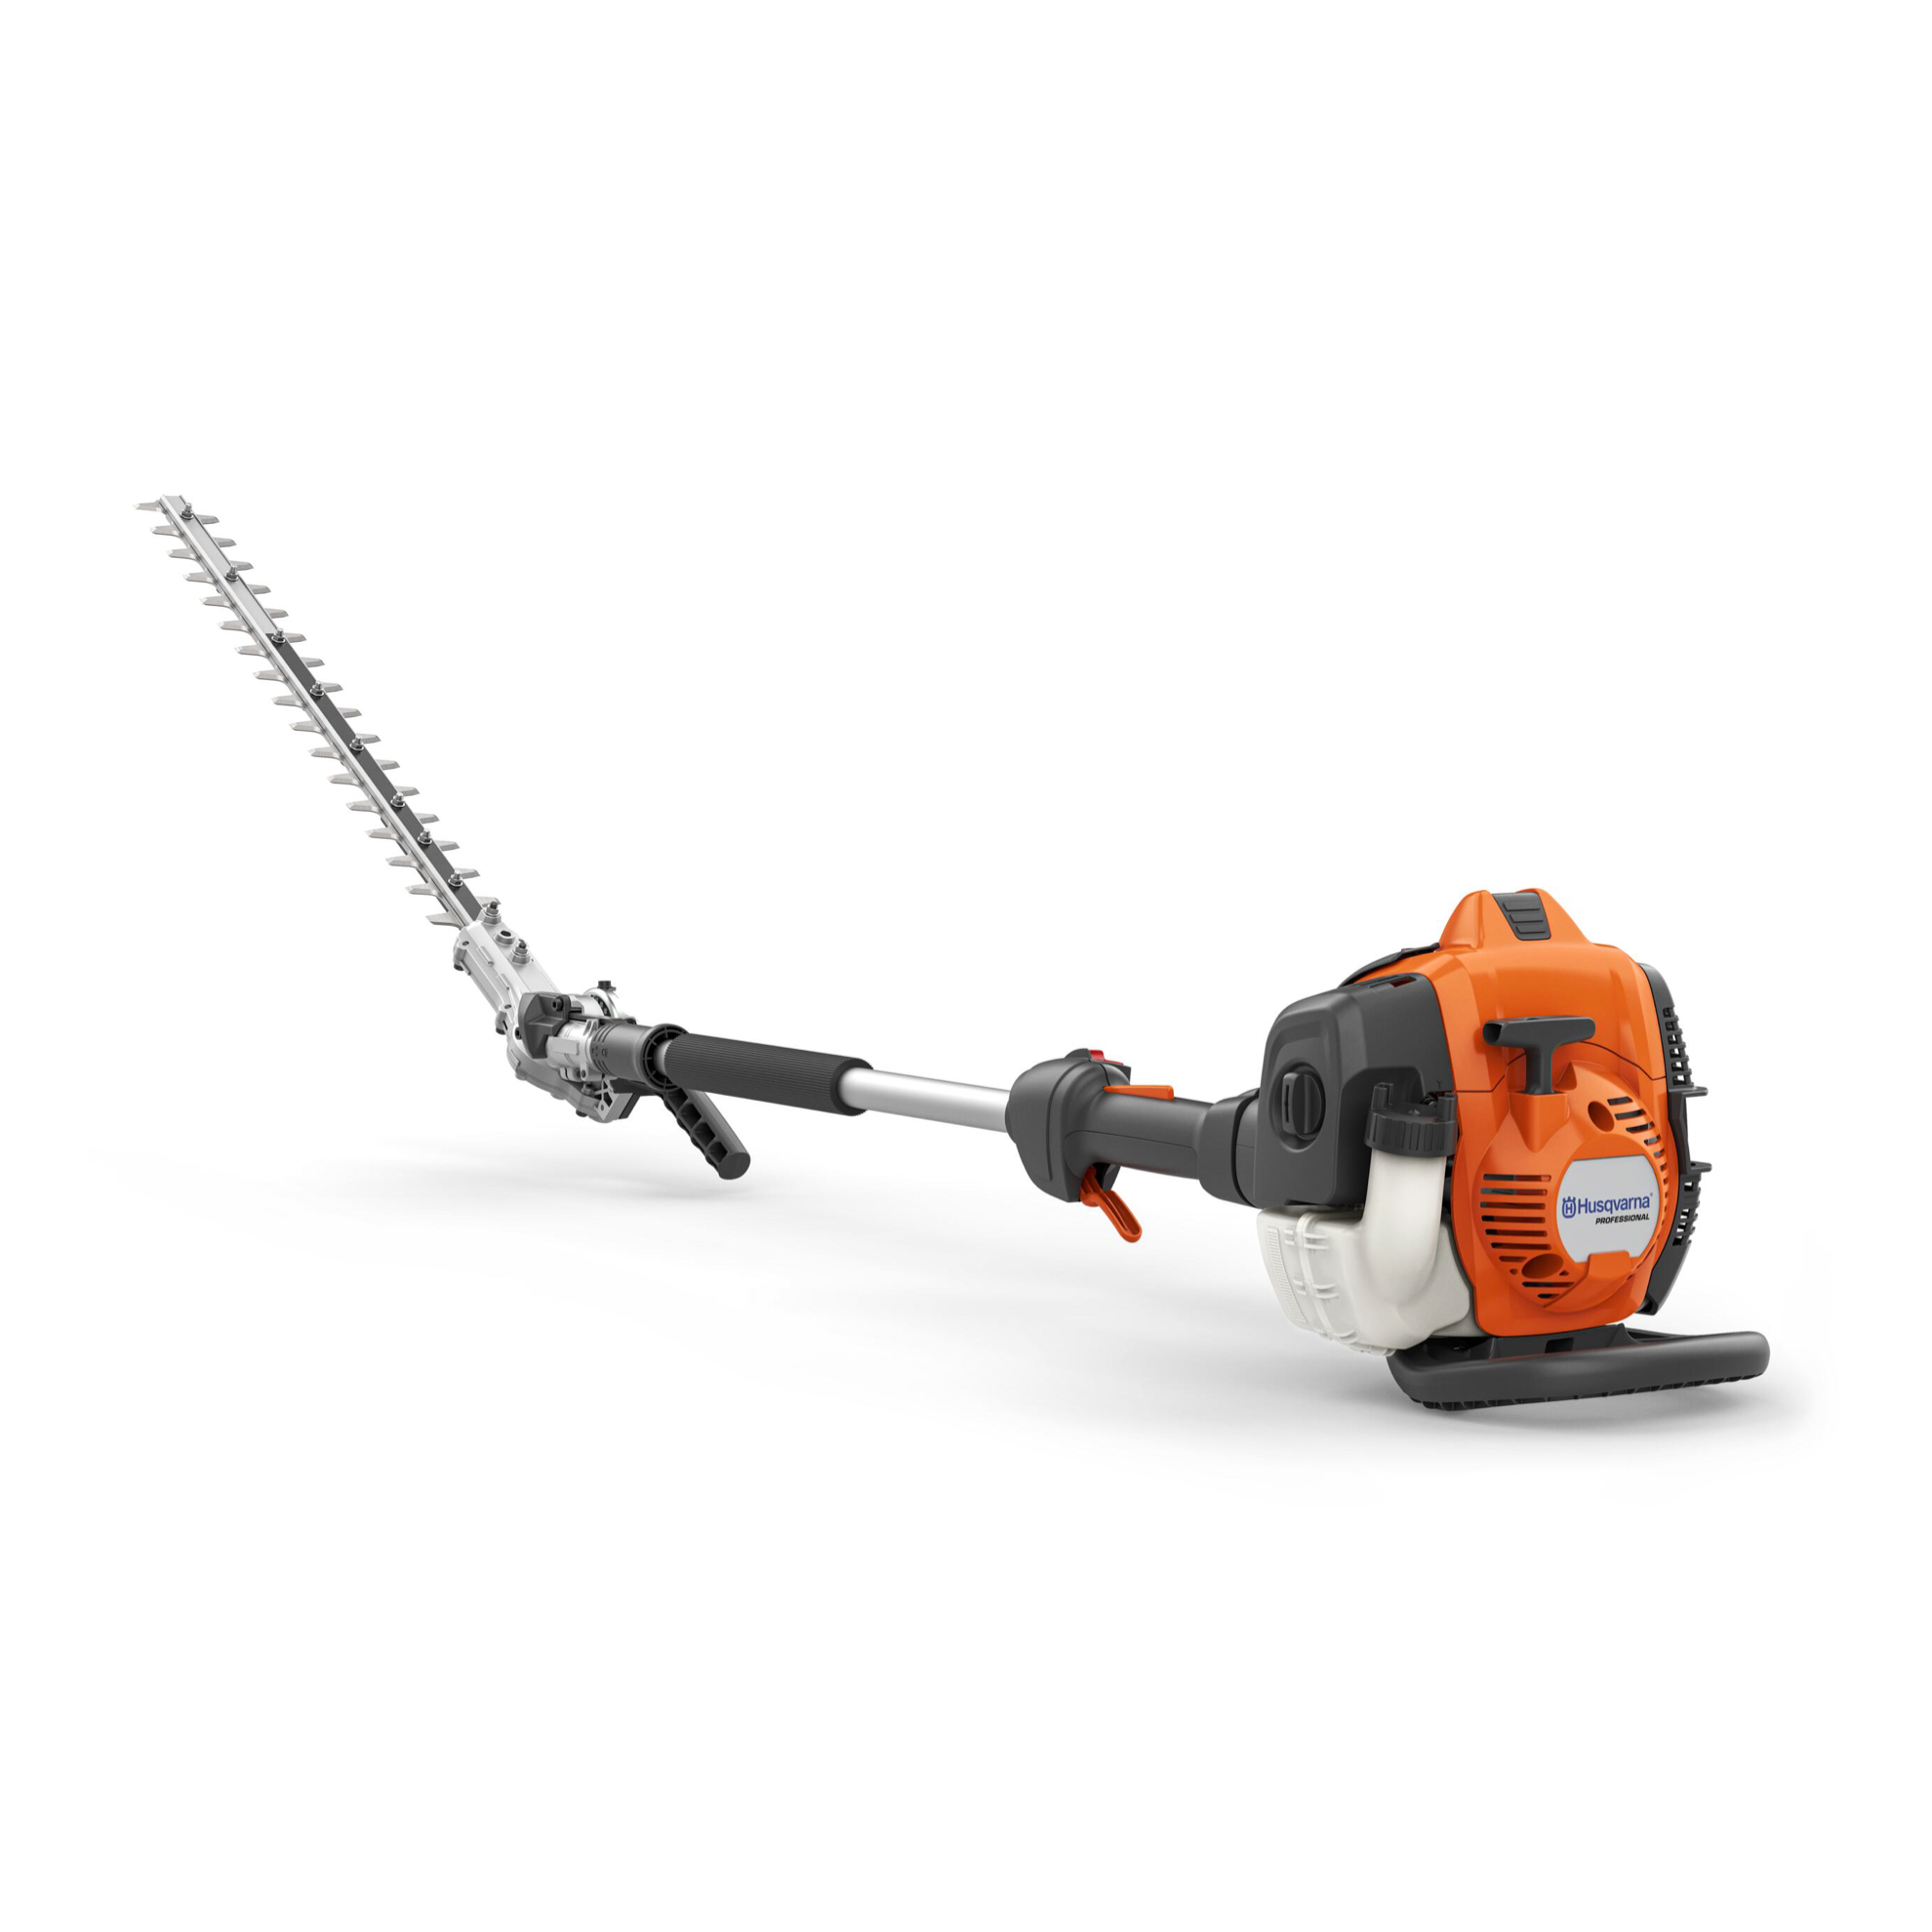 Husqvarna 525HE3 Petrol-powered Hedge Trimmer